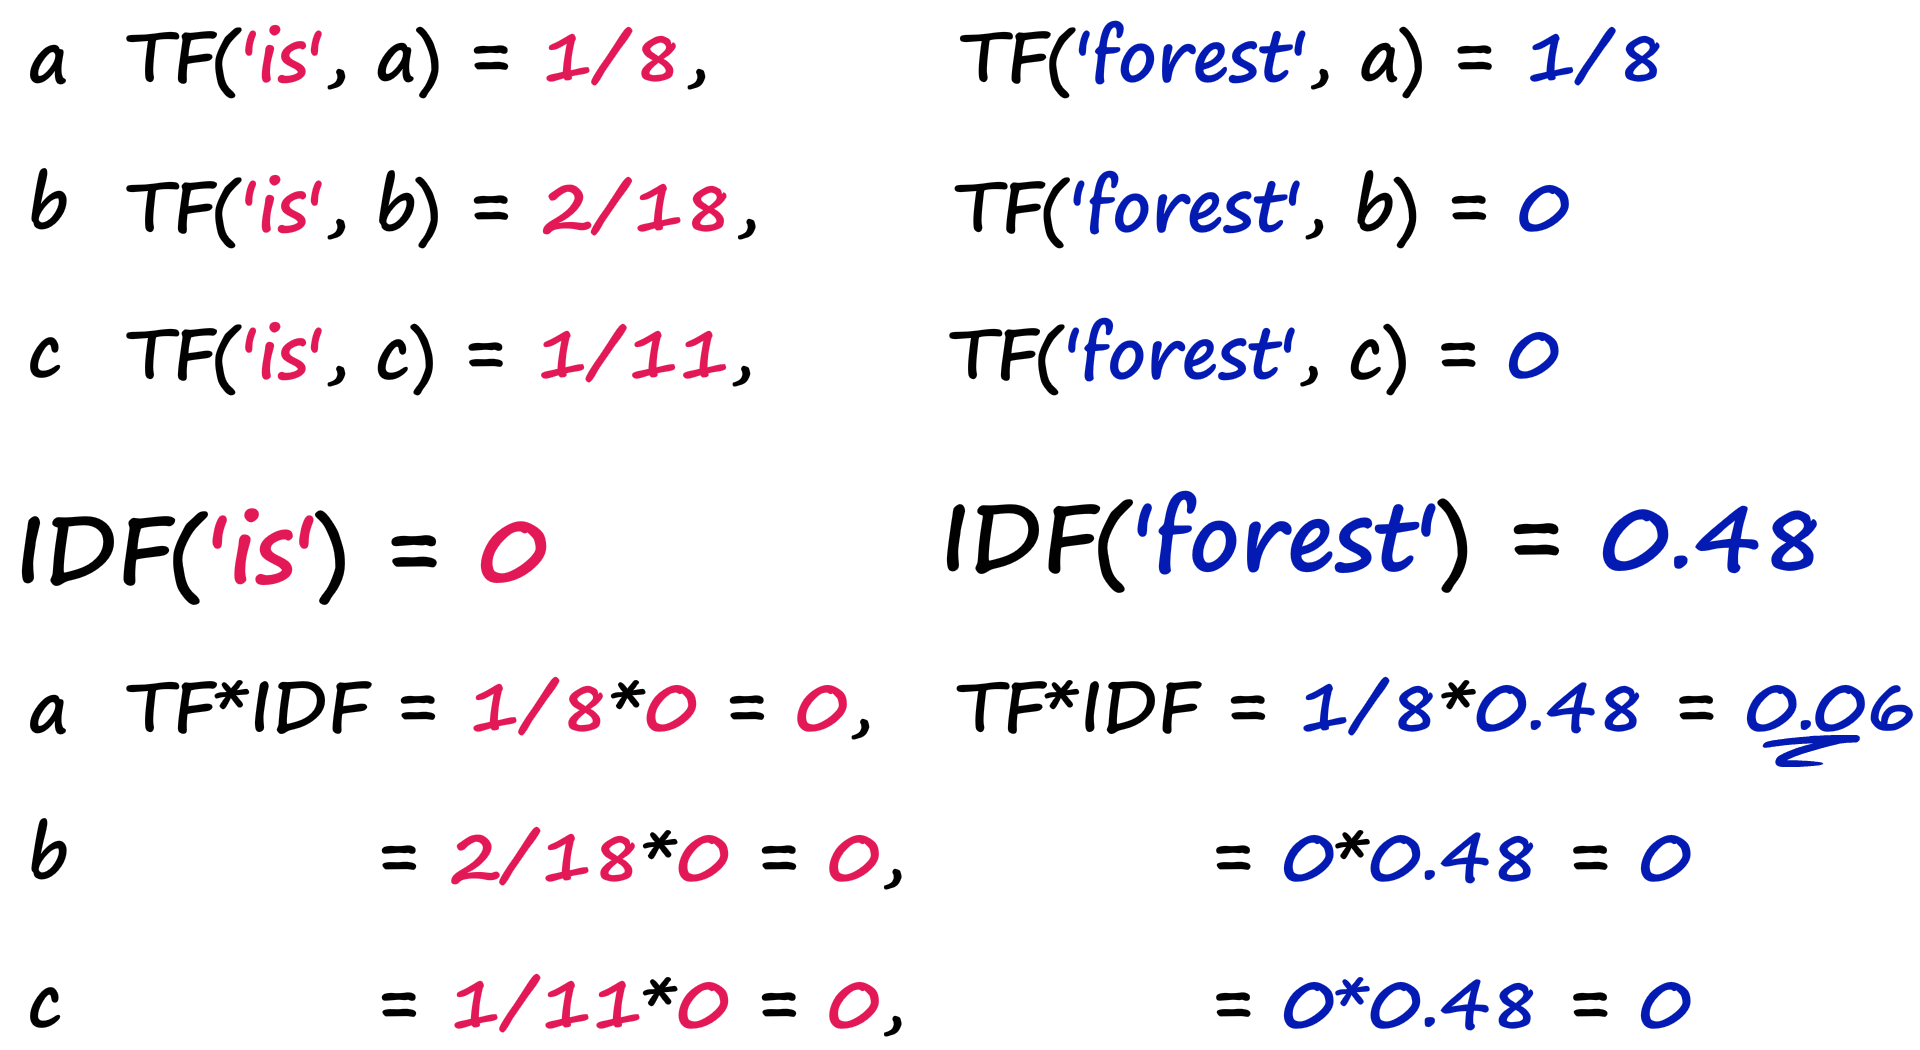 We calculate the TF('is', D) and TF('forest', D) scores for docs a, b, and c.